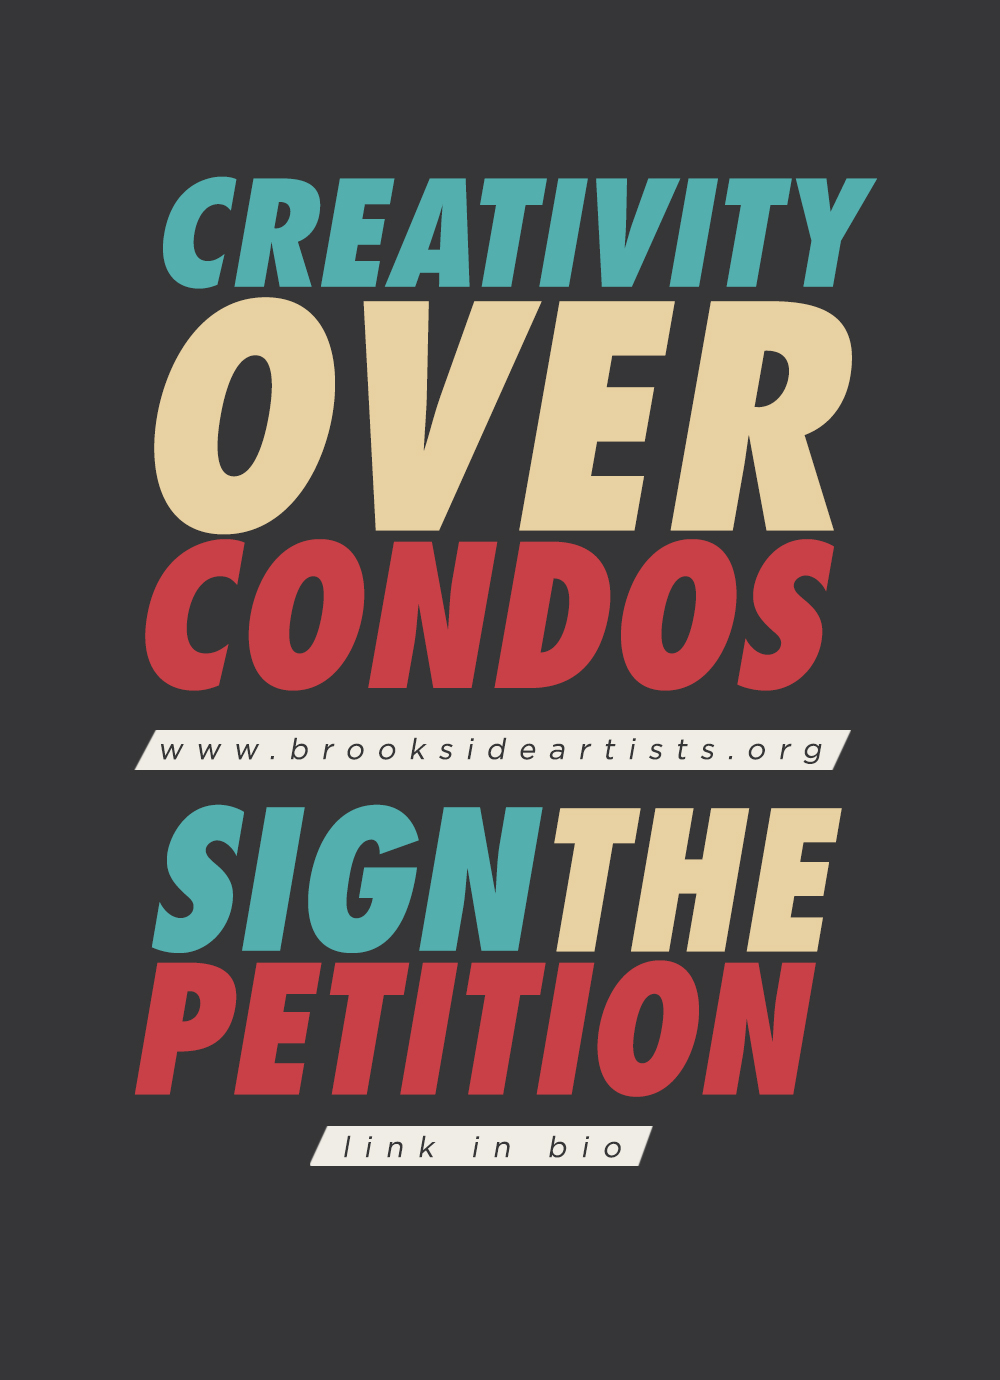 COC SIGN PETITION - 01a.jpg